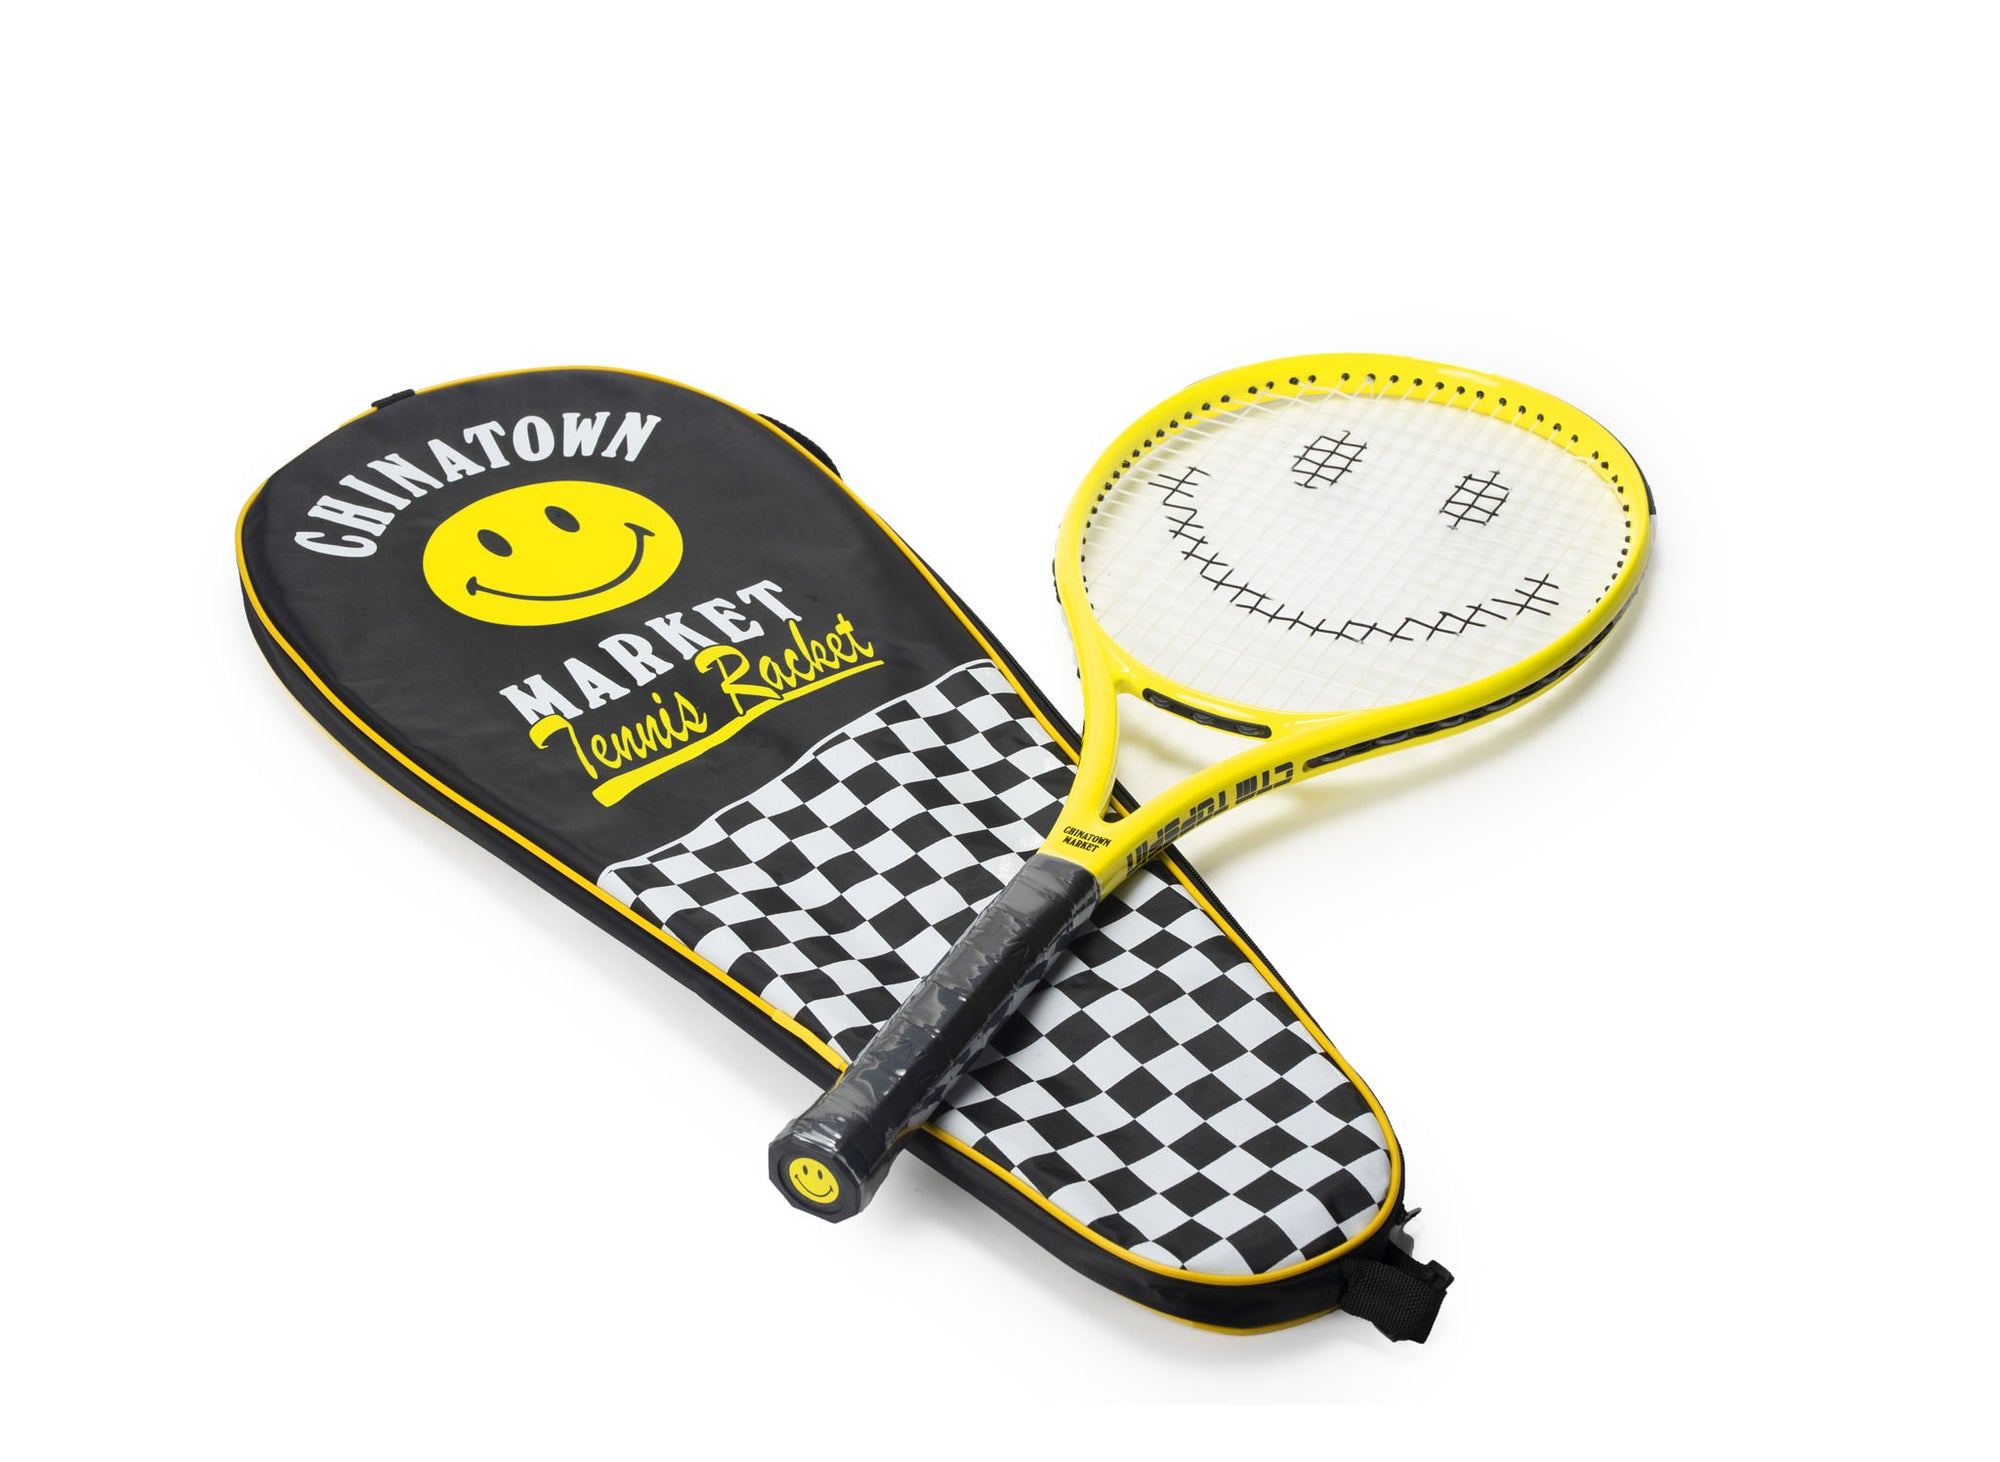 CHINATOWN MARKET SMILEY TENNIS RACKETS